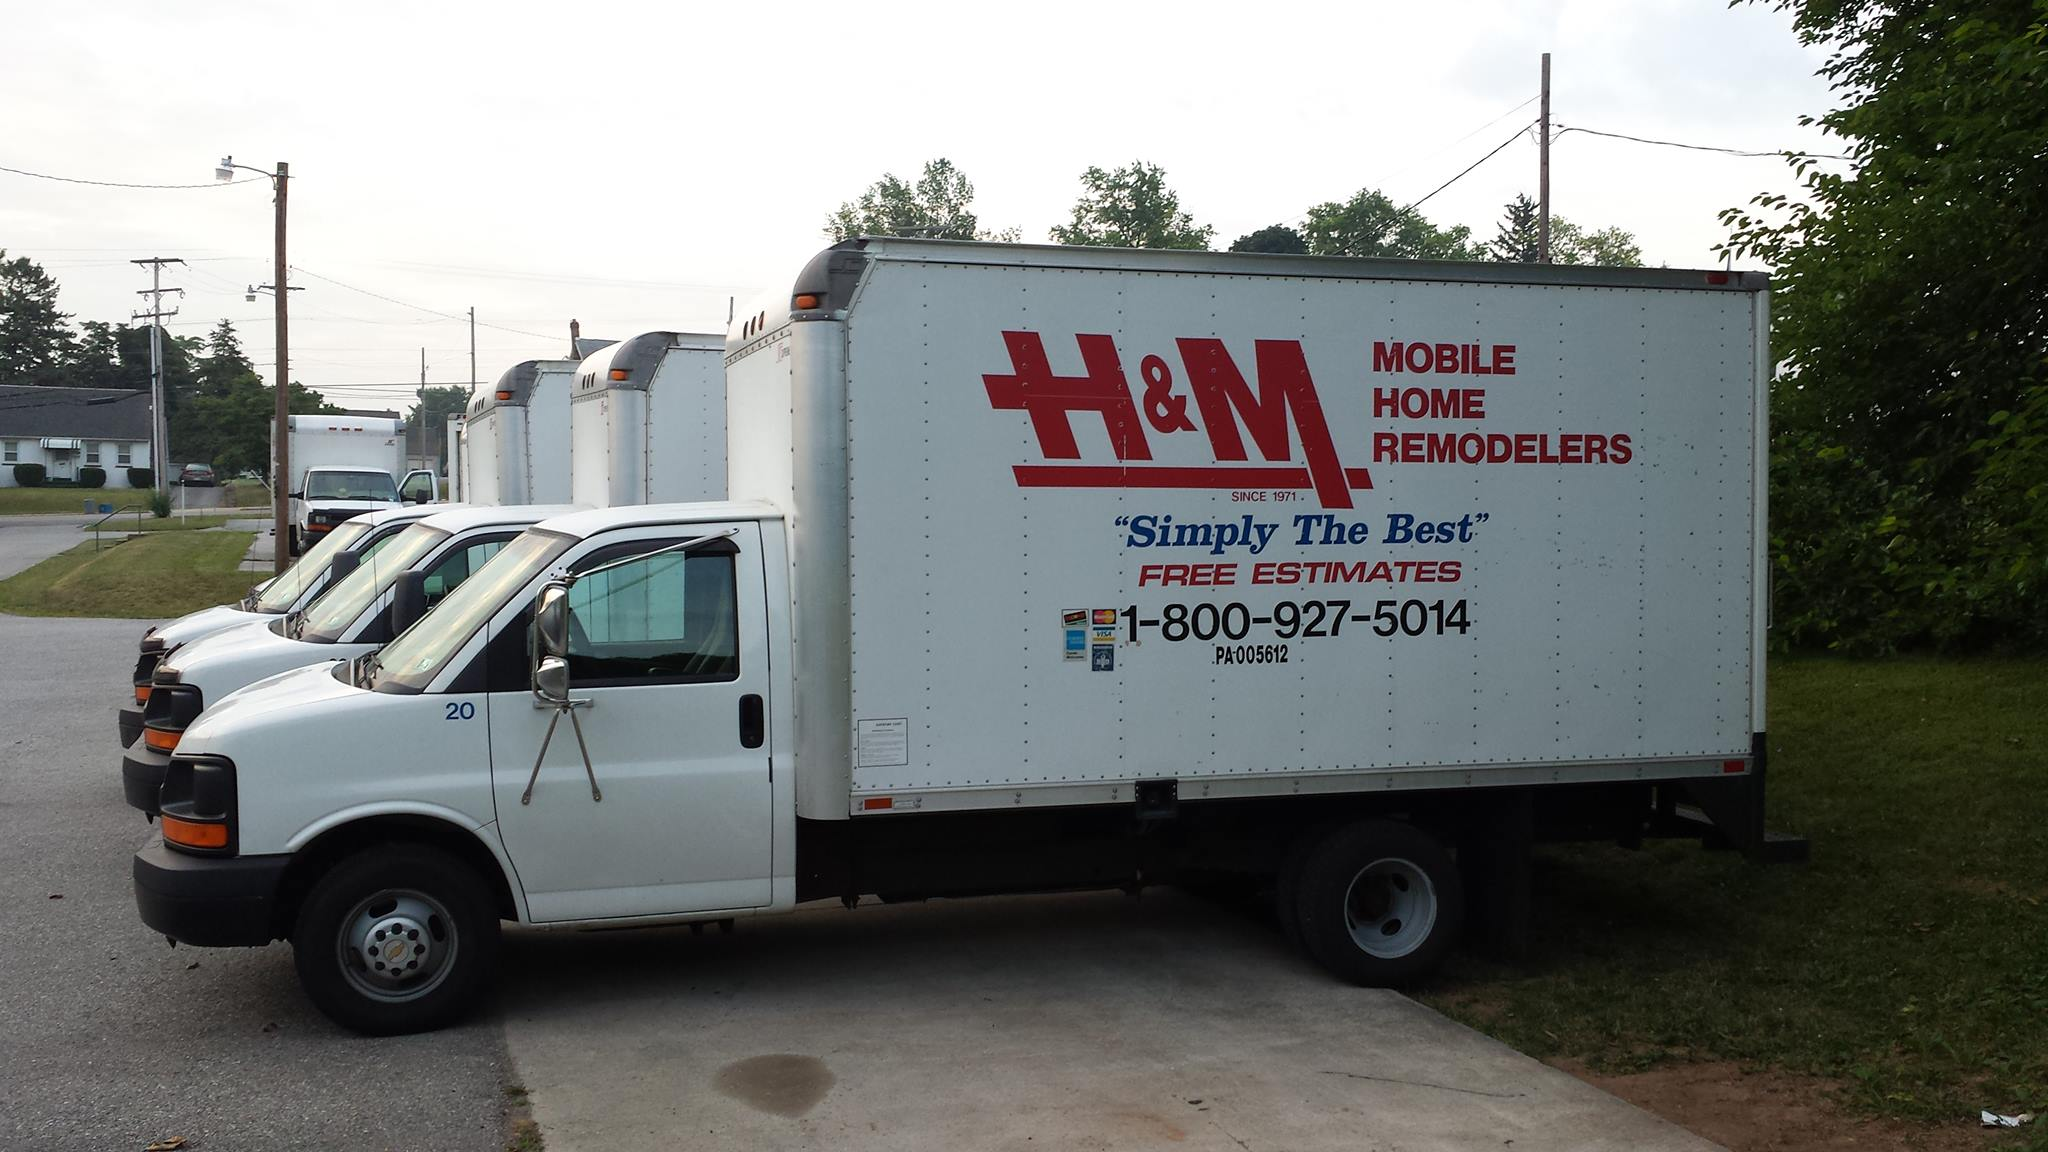 H & M Mobile Home Remodelers – Serving 14 Counties in